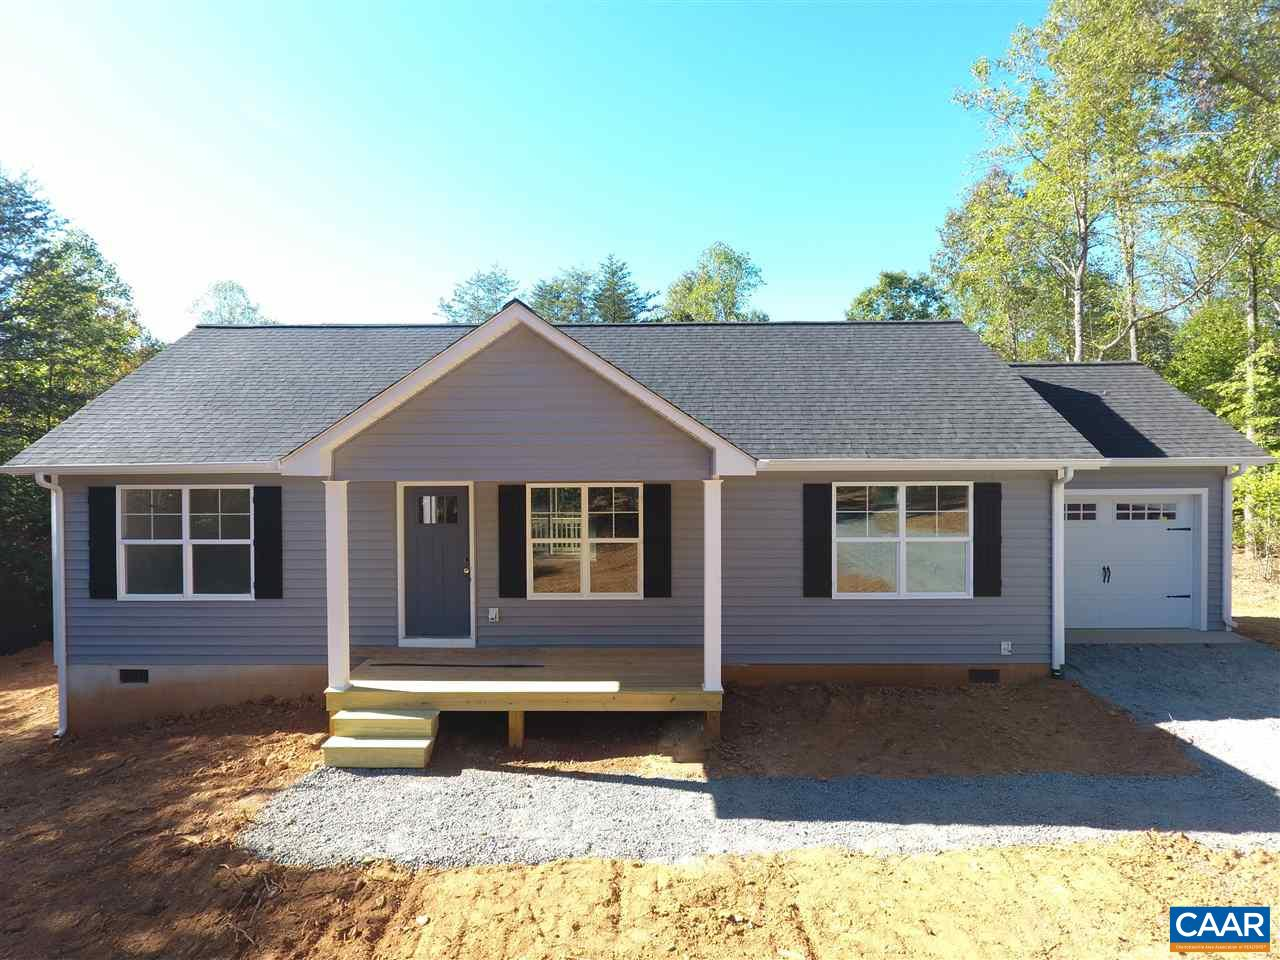 Single Family Home for Sale at 6526 ESMONT Road Keene, Virginia 22946 United States